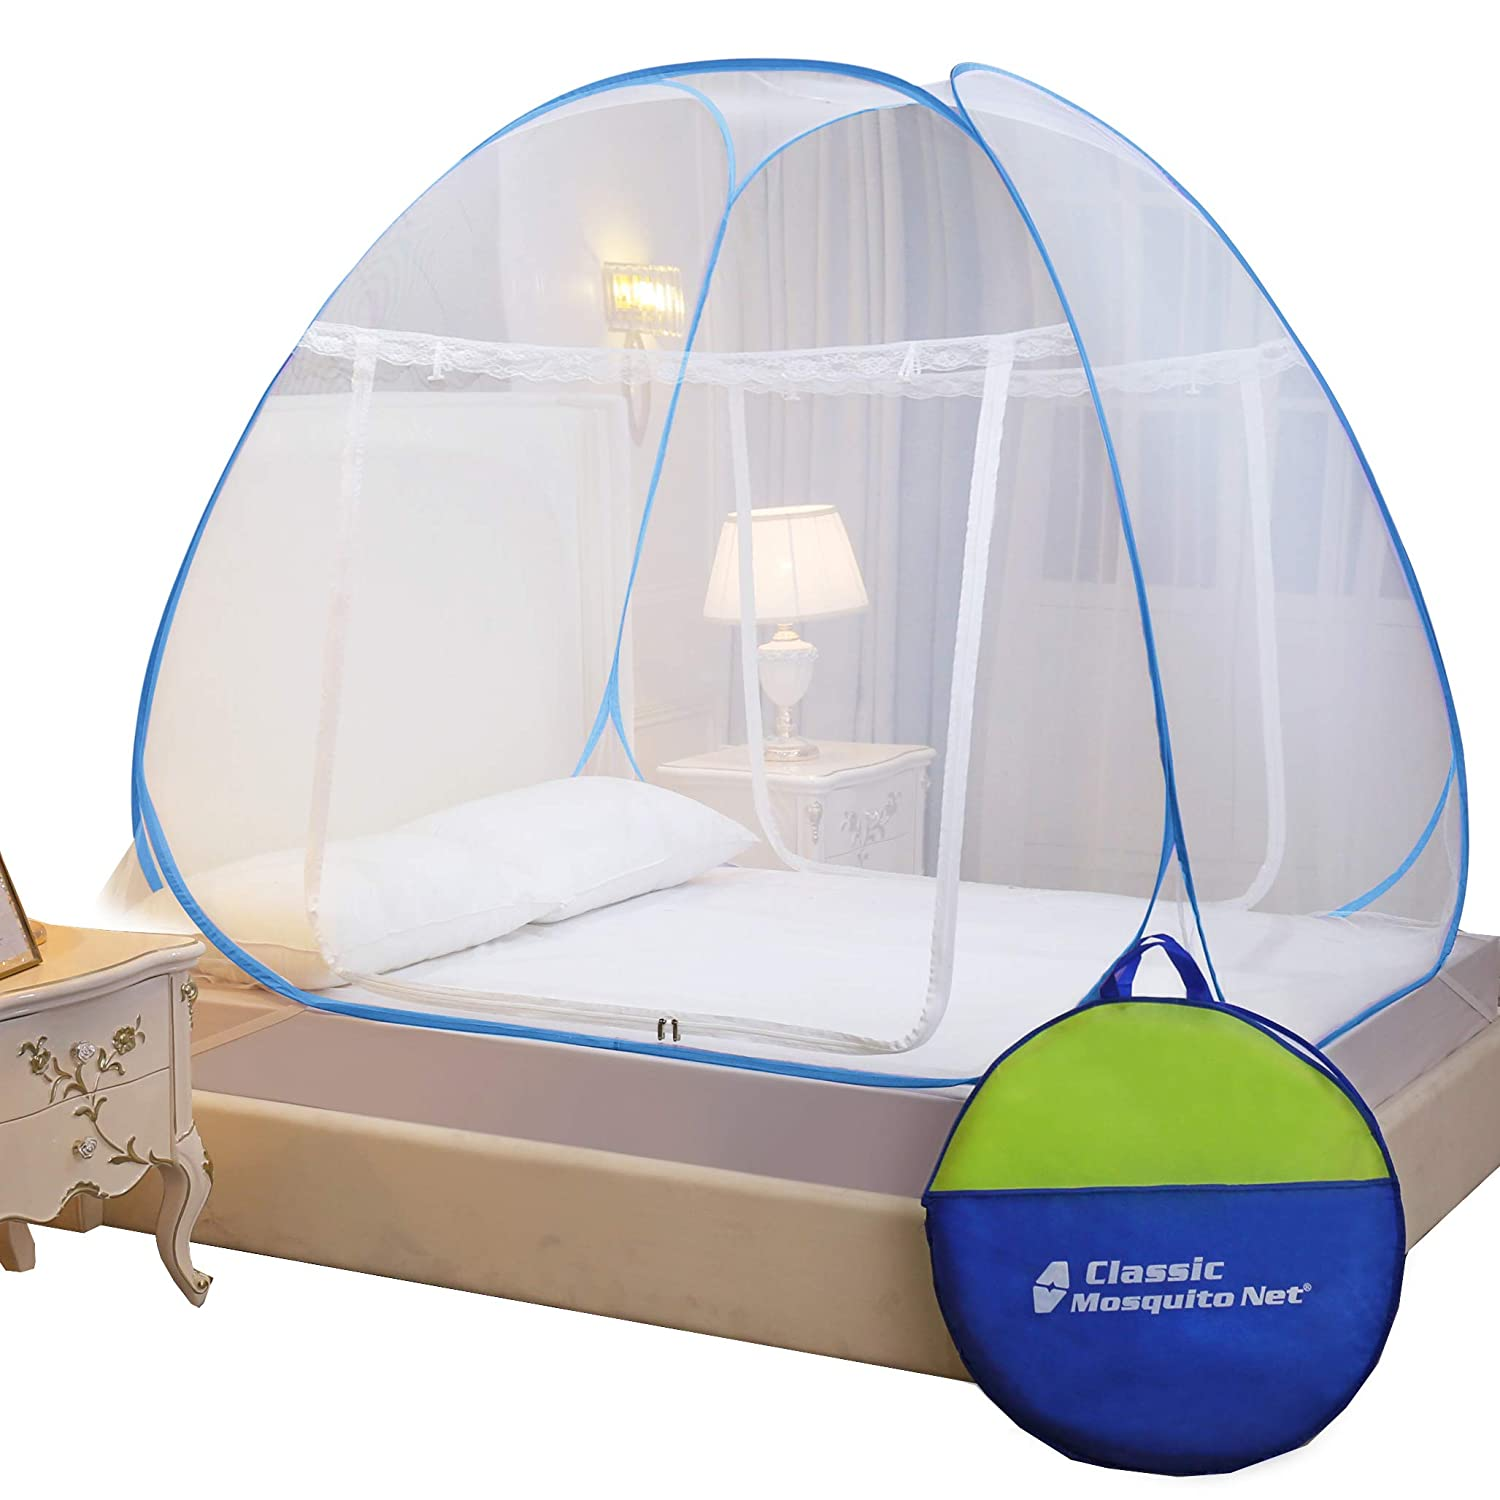 Classic Mosquito Net Double Bed Mosqutio net $13.99 Coupon